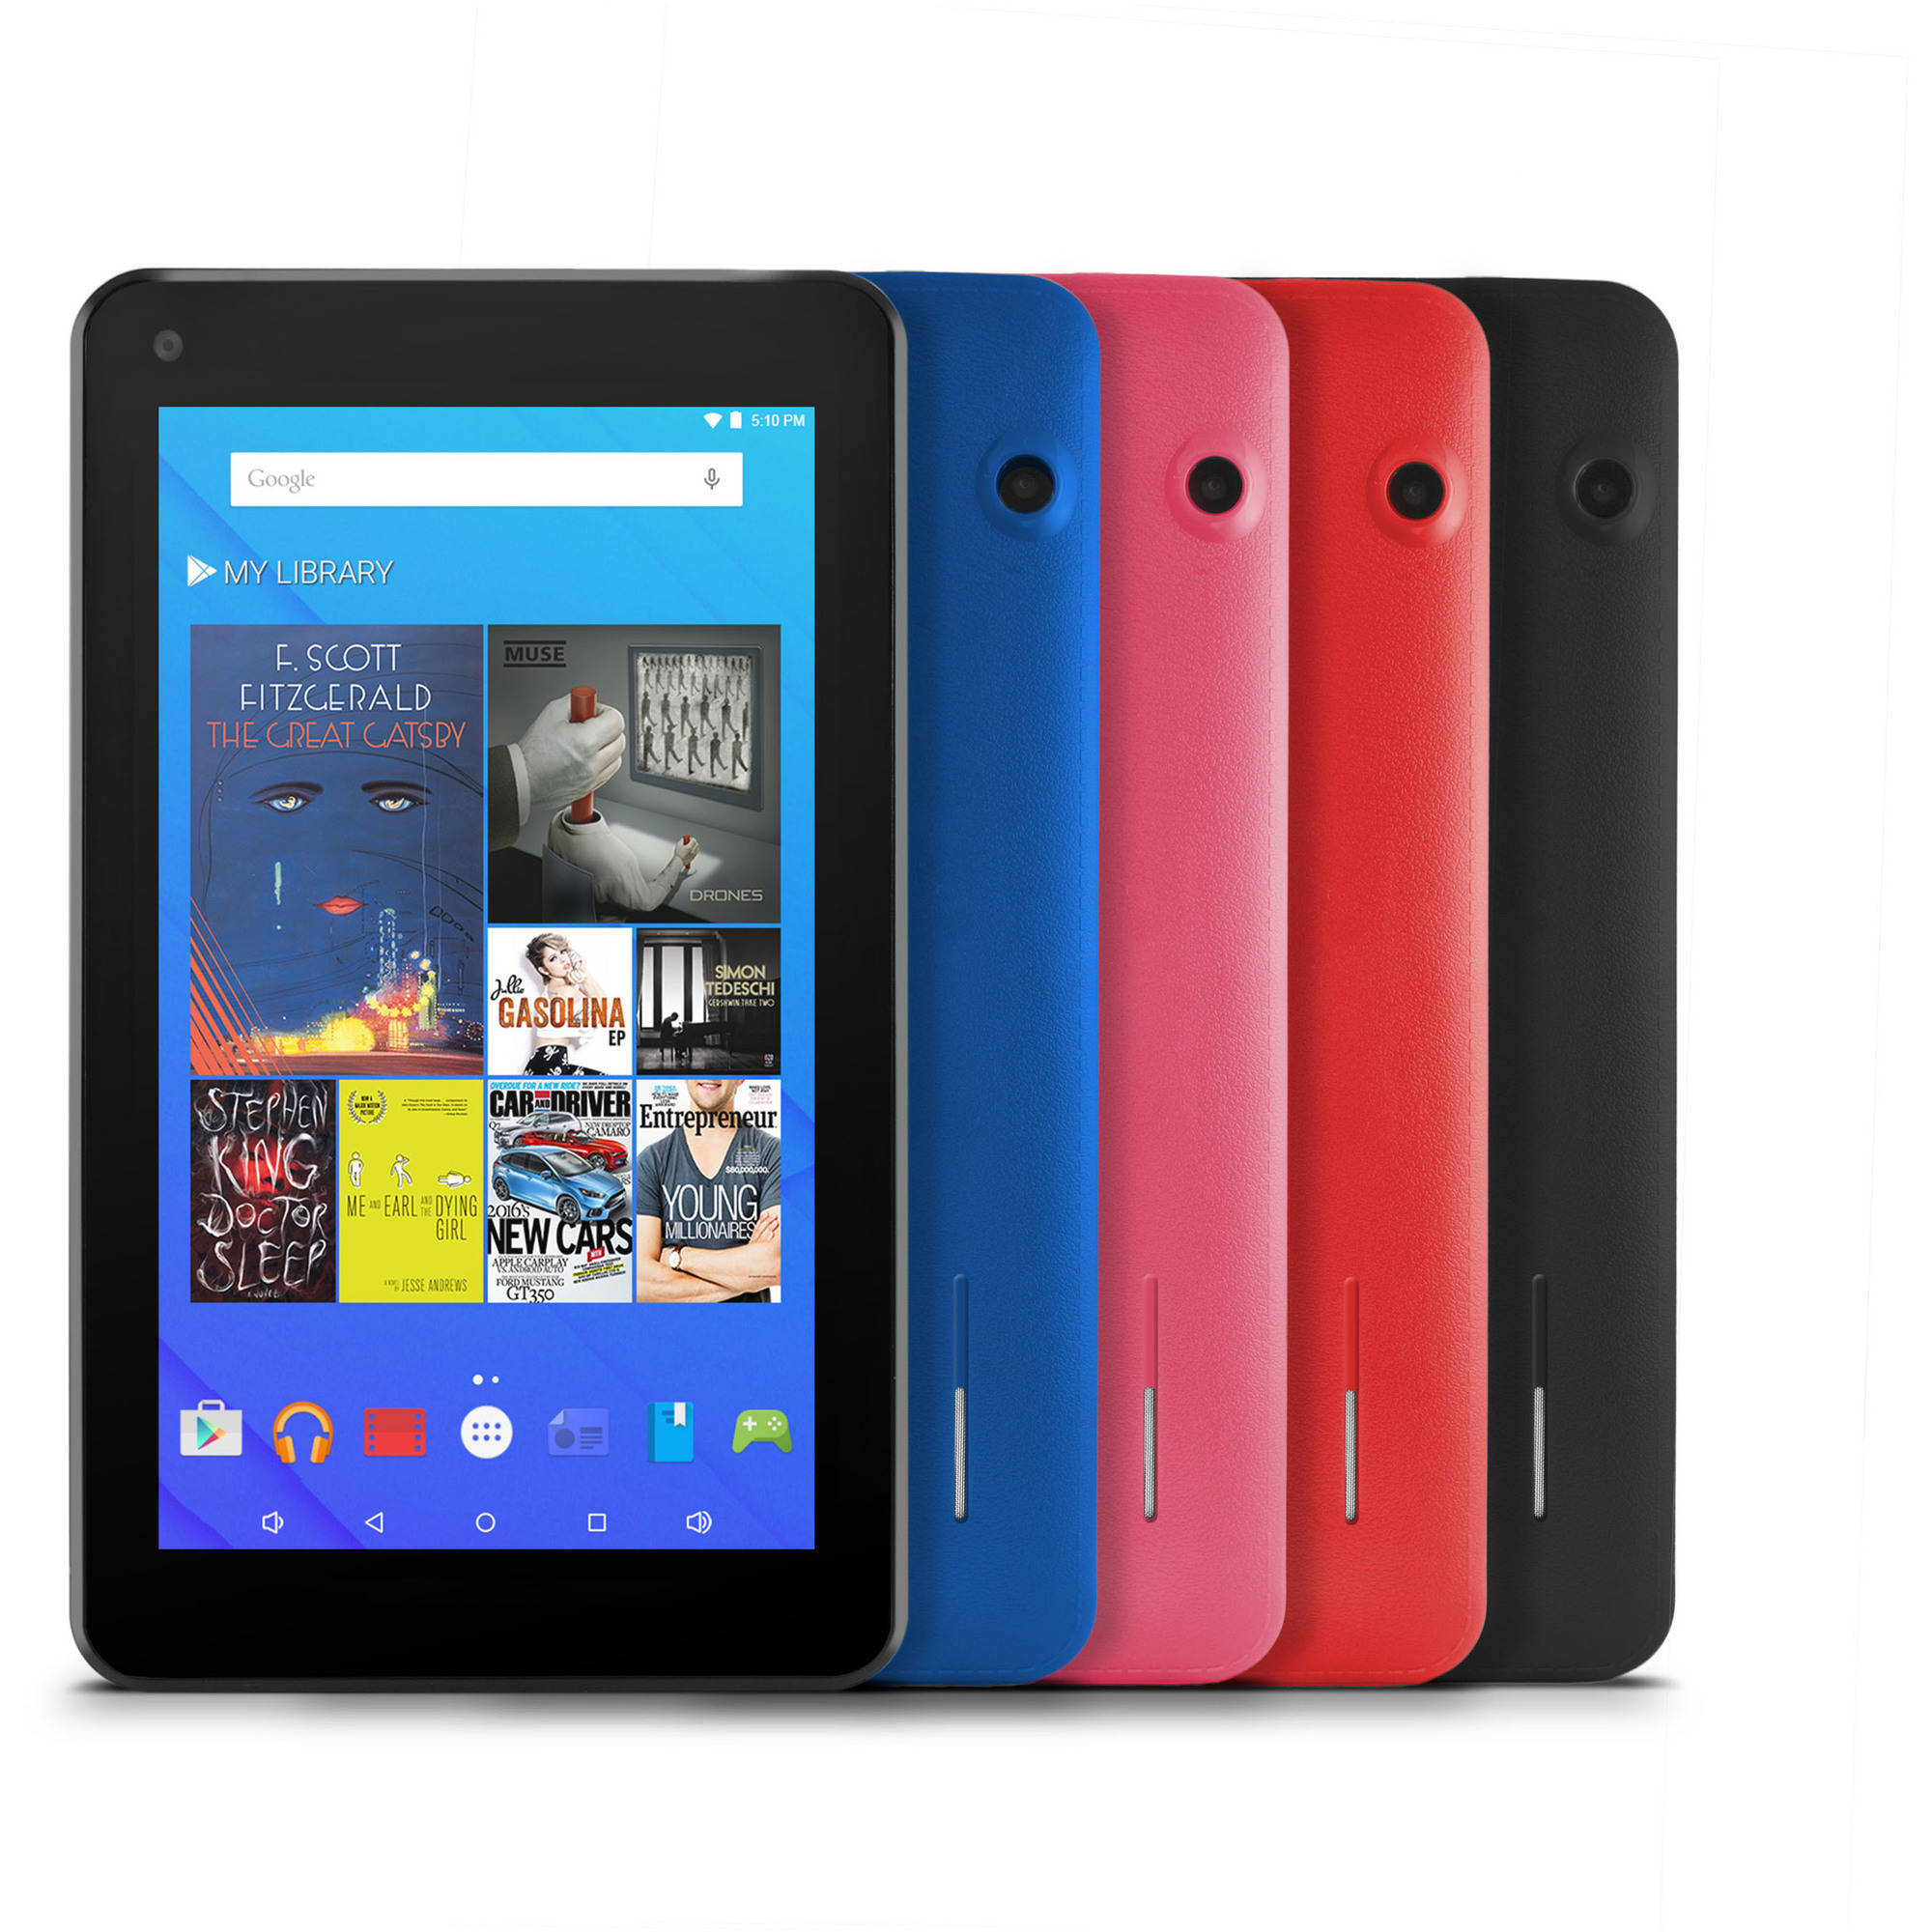 Ematic EGQ377 with WiFi 7 Touchscreen Tablet PC Featuring Android 5.1 (Lollipop) Operating System